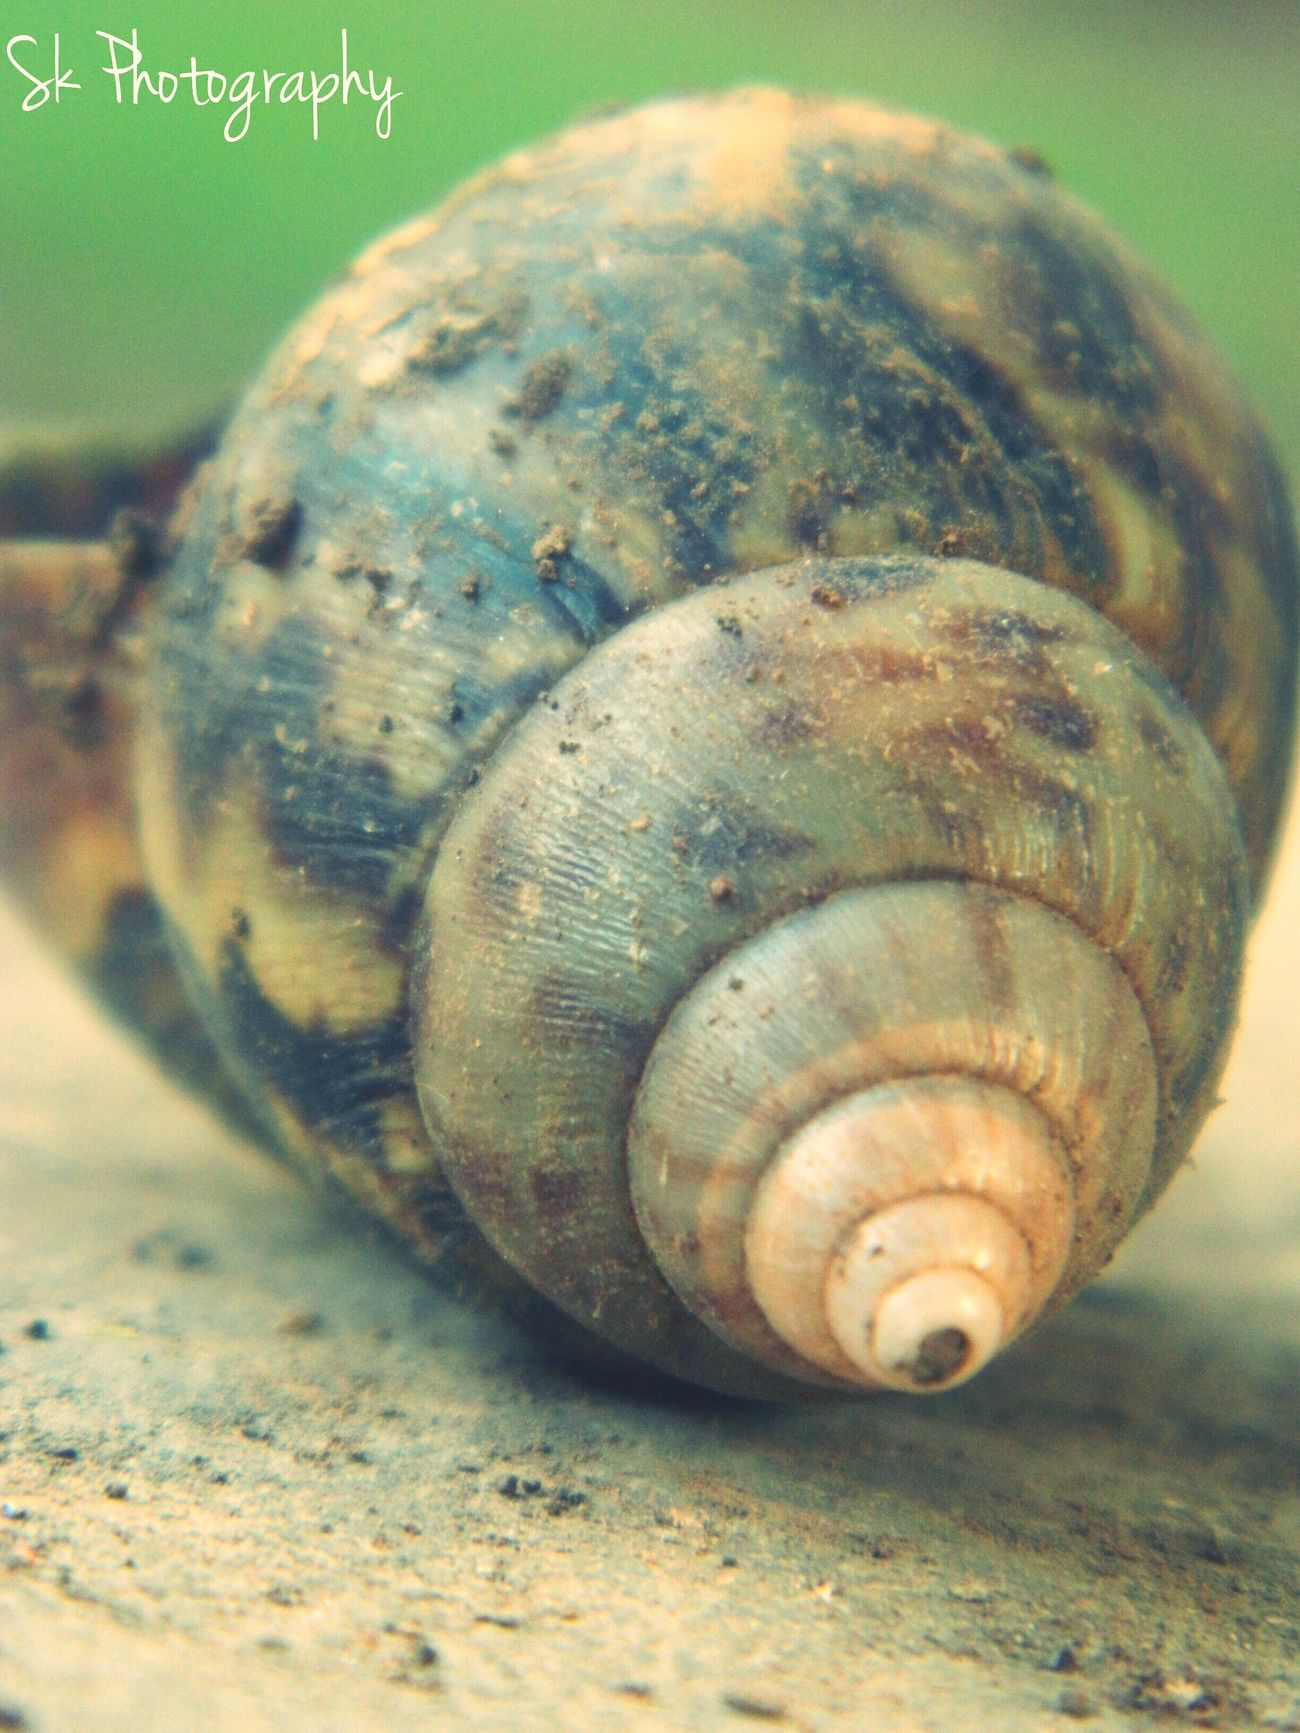 Dorsal view of a gastropod shell ? Taking Photos Photography Outdoors Nature Terrestrial Gastropod Mollusc Snailshell Snail🐌 Snail Collection